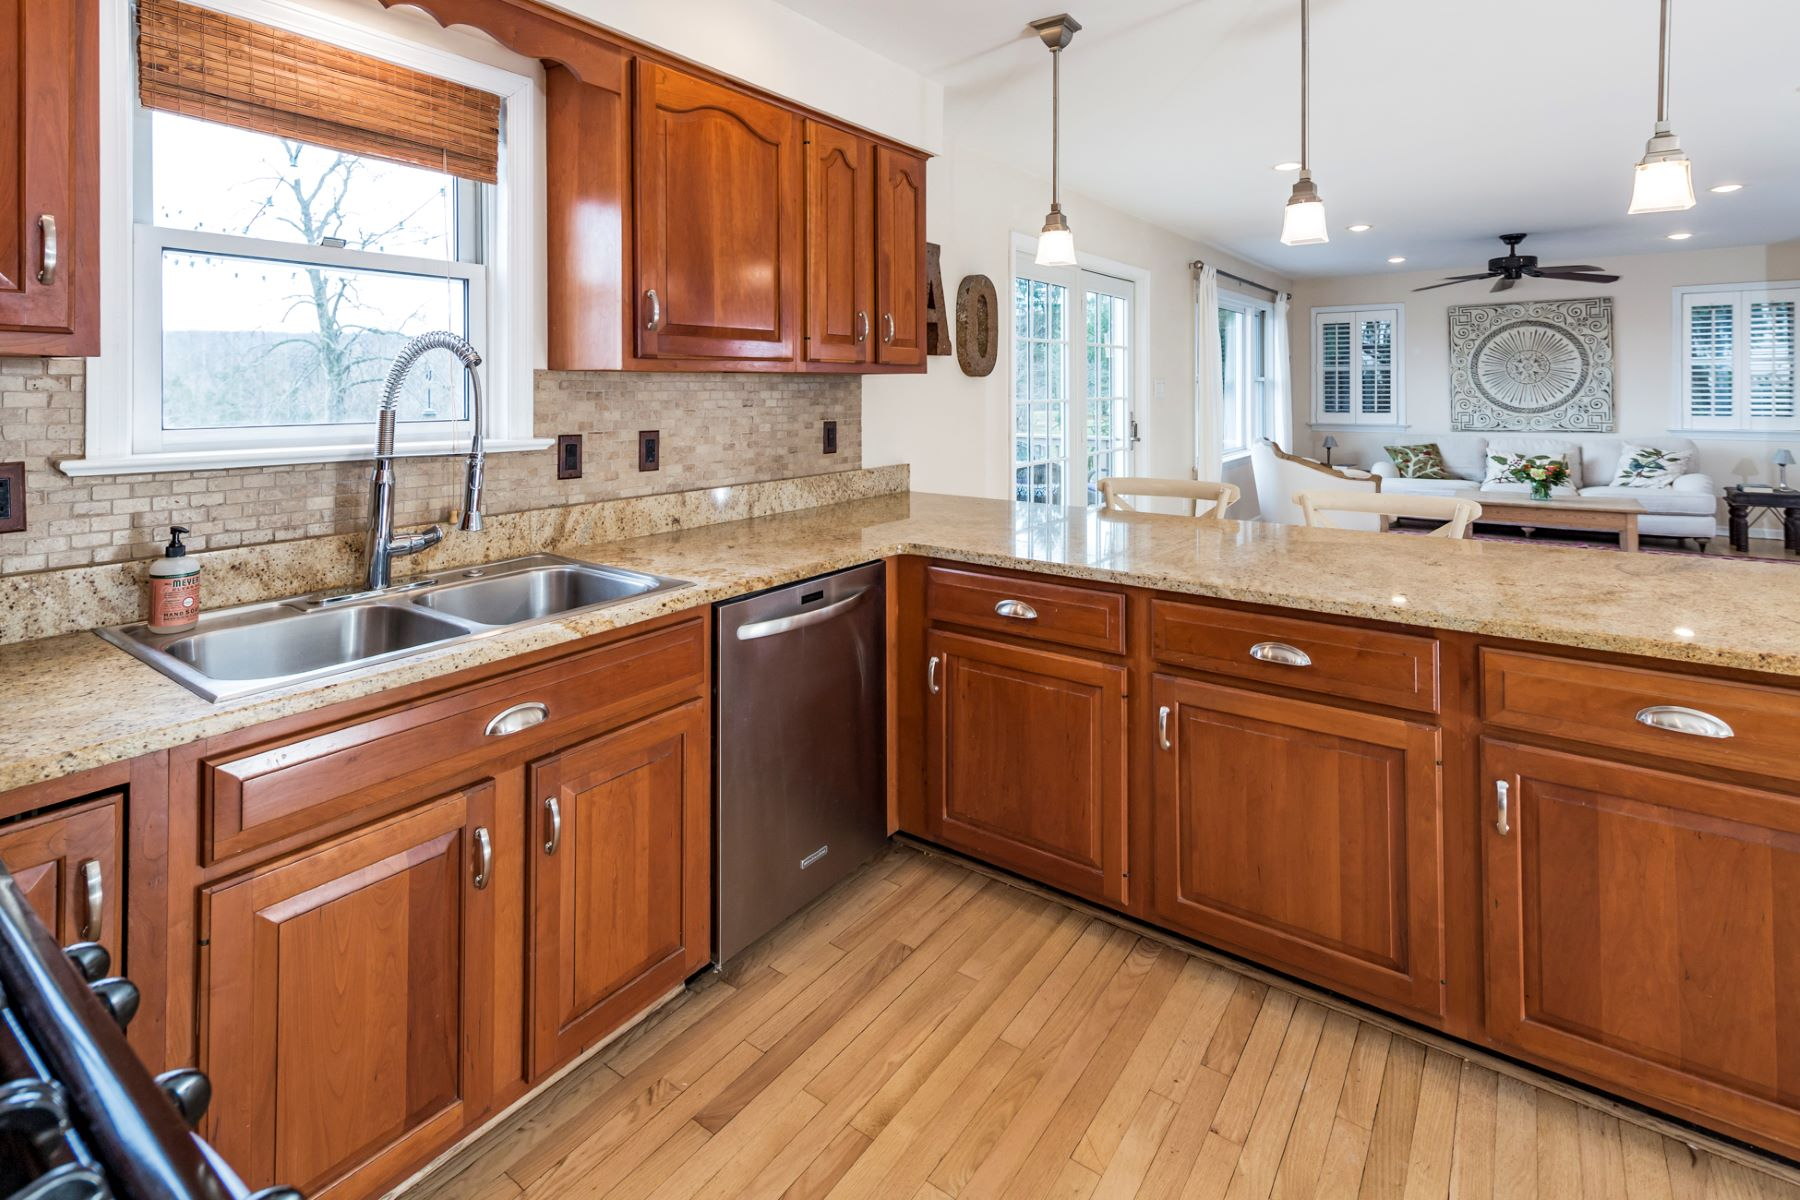 Additional photo for property listing at A Lovely Home In An Even Lovelier Location 38 2nd Street, Hopewell, New Jersey 08525 United States